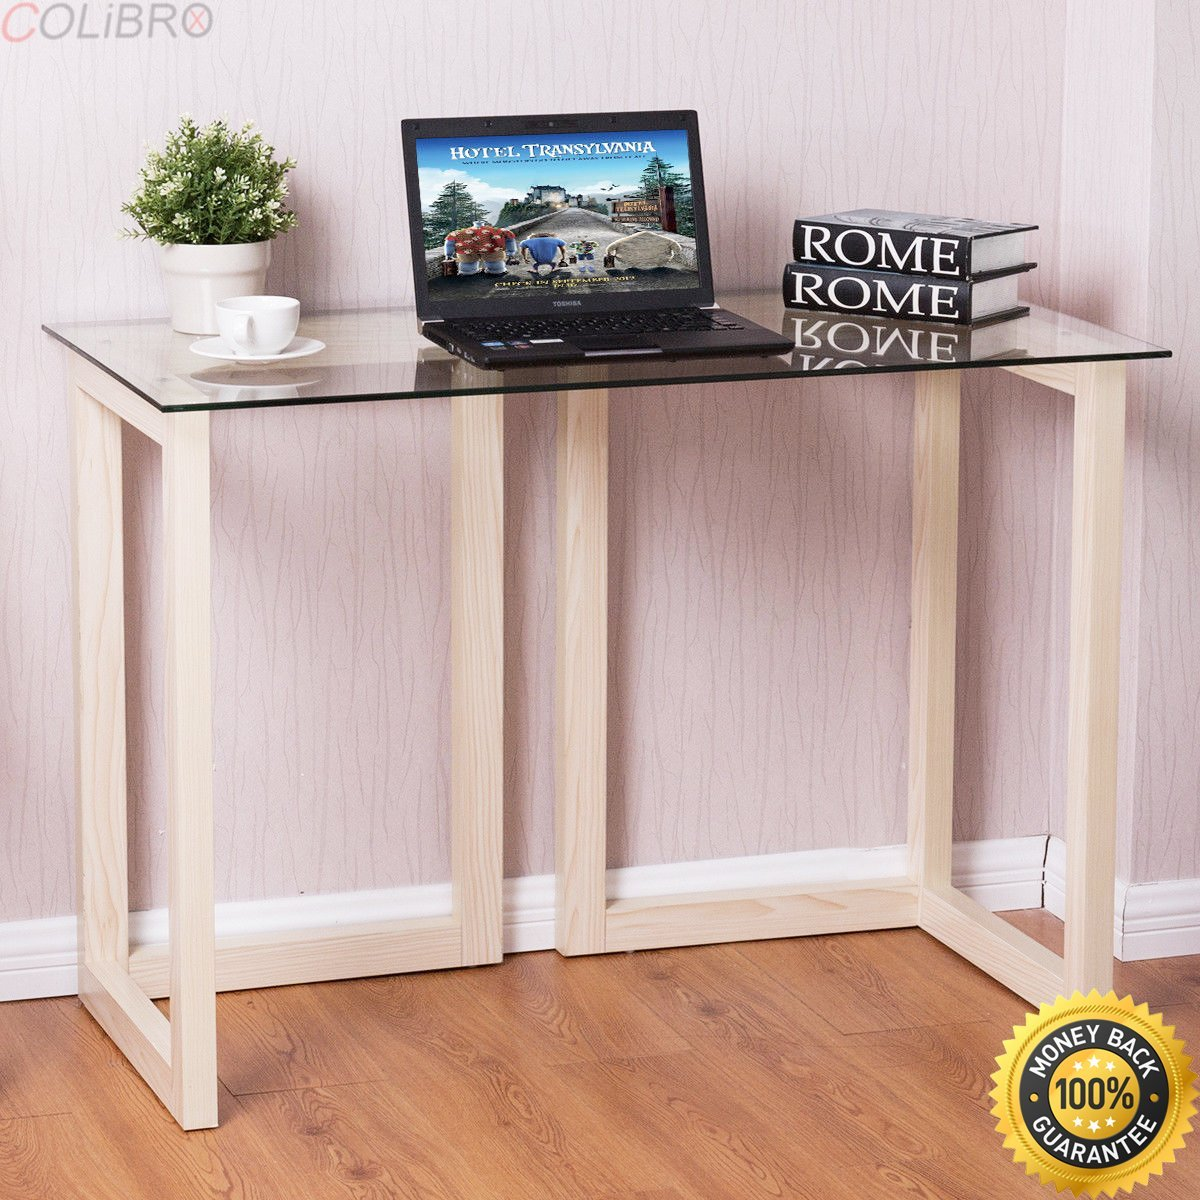 accent tables small find line very table get quotations colibrox tempered glass top console desk sofa wood entryway furniture breakfast and chairs light oak side vanity stools